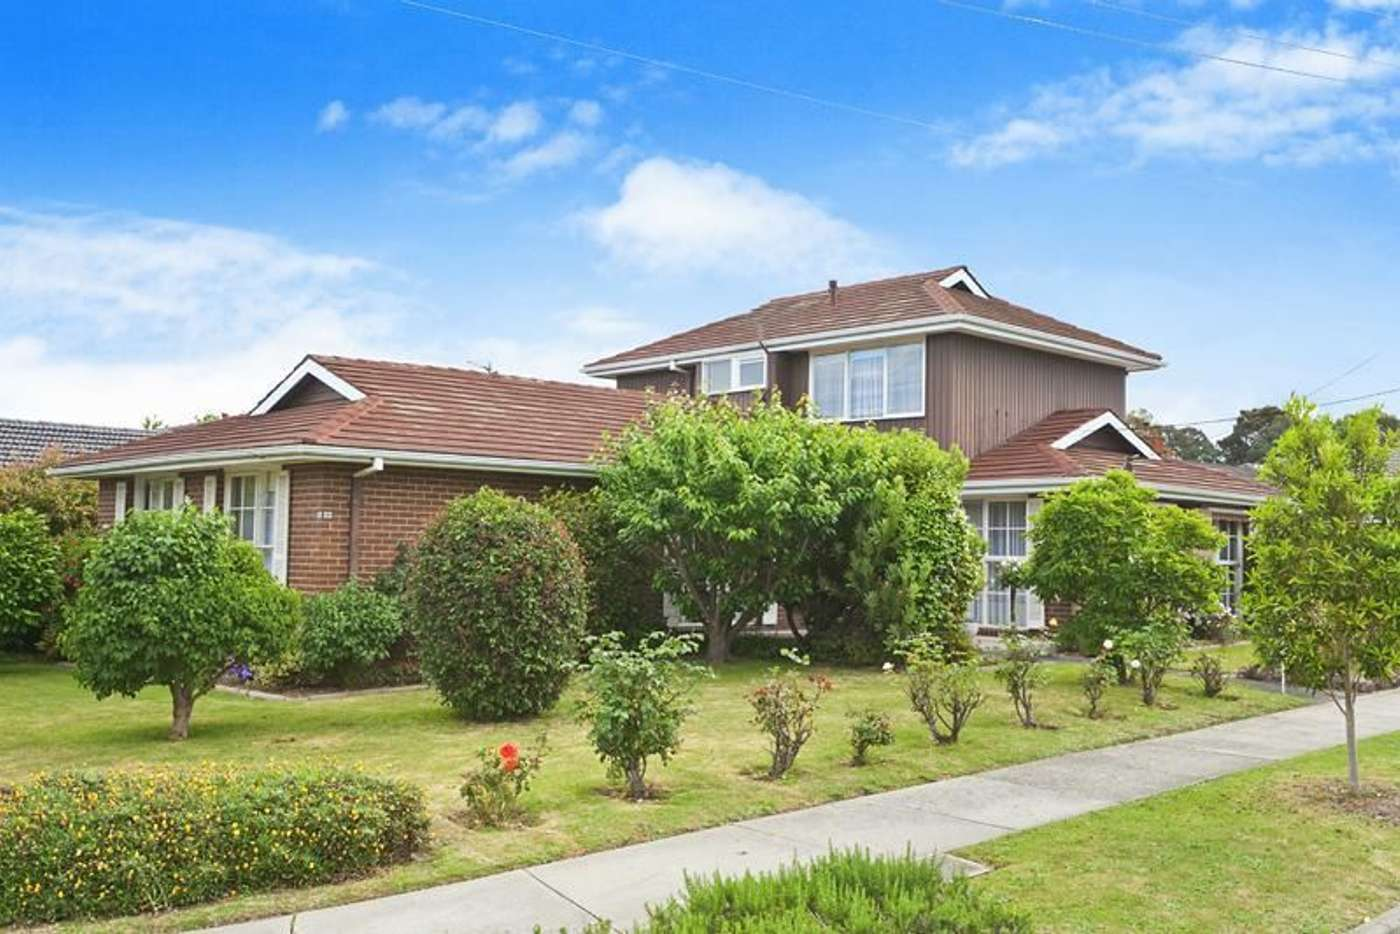 Main view of Homely house listing, 123 Lawrence Road, Mount Waverley VIC 3149